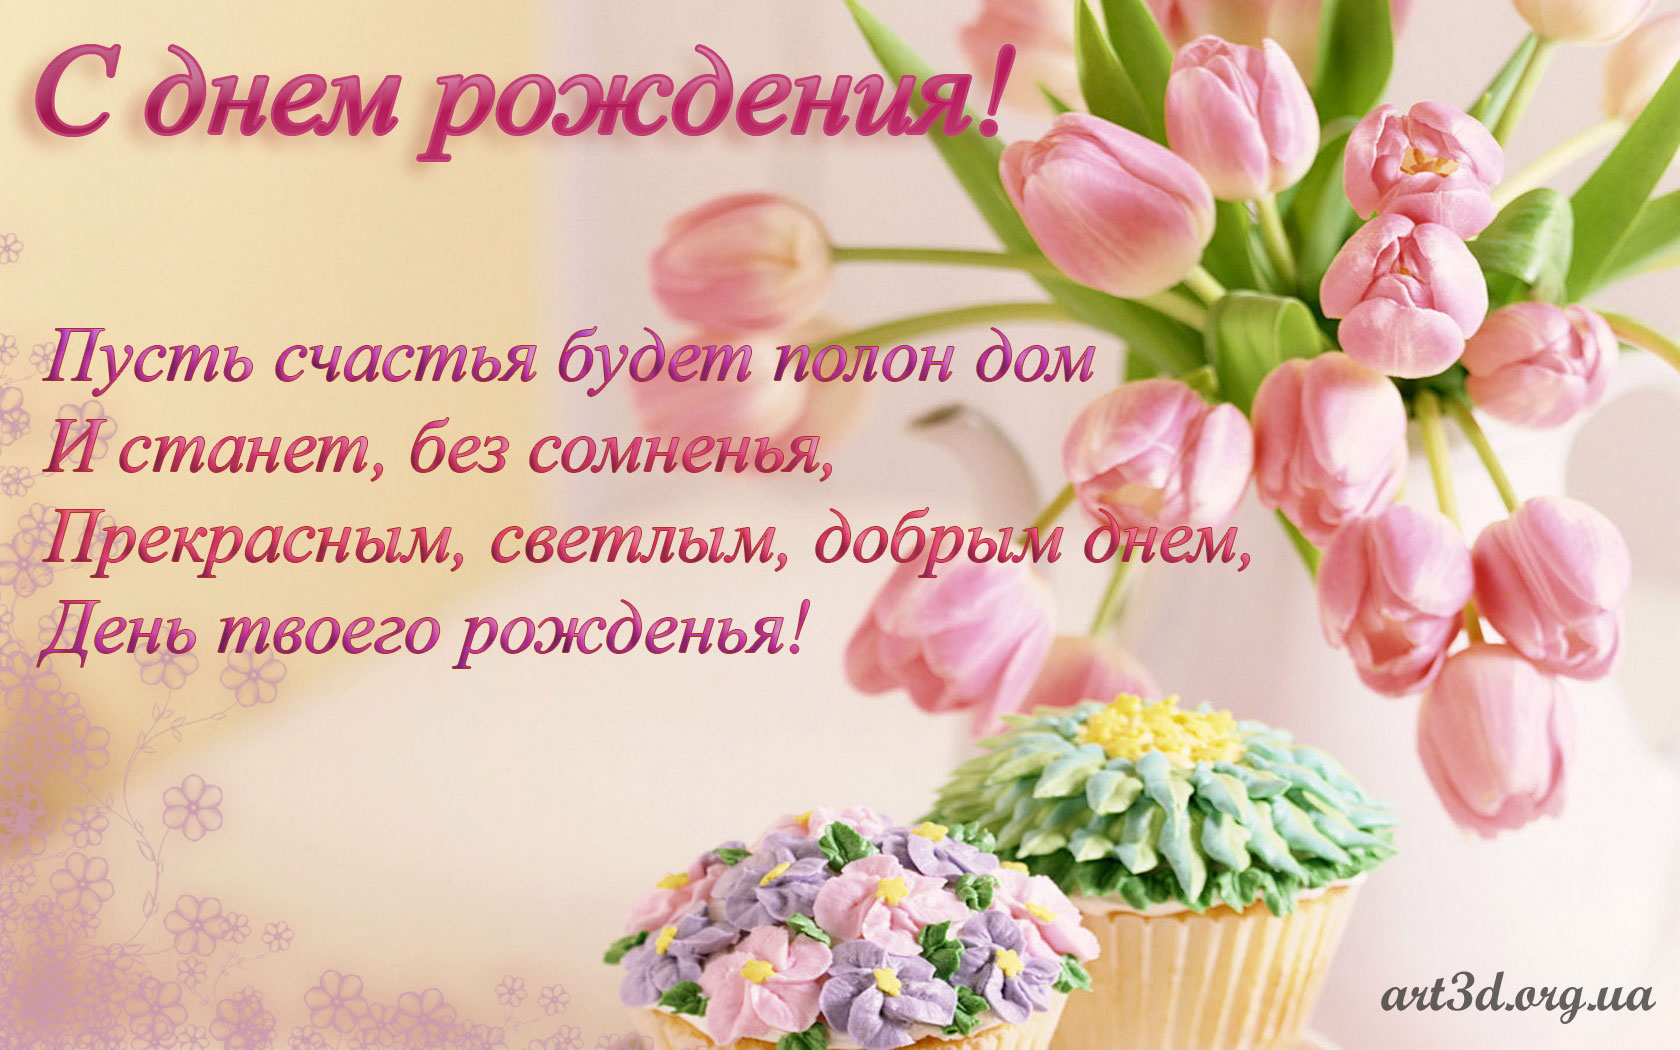 http://s0.tochka.net/cards/images/orig_1bb2a9e10c29bc8bef5ccd45e58c086e.jpg